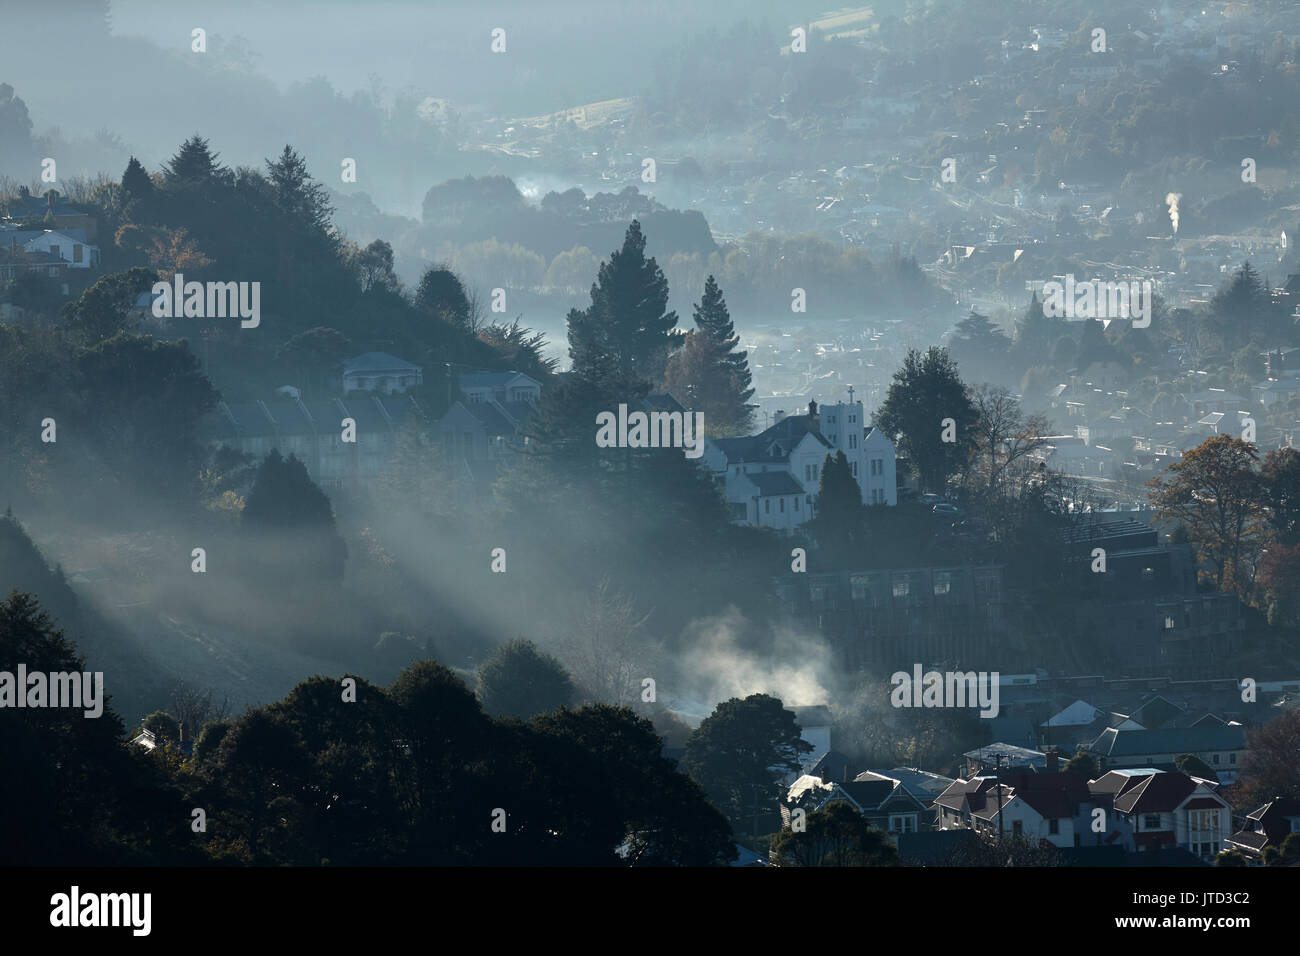 Air Pollution, North East Valley, Dunedin, Otago, South Island, New Zealand - Stock Image